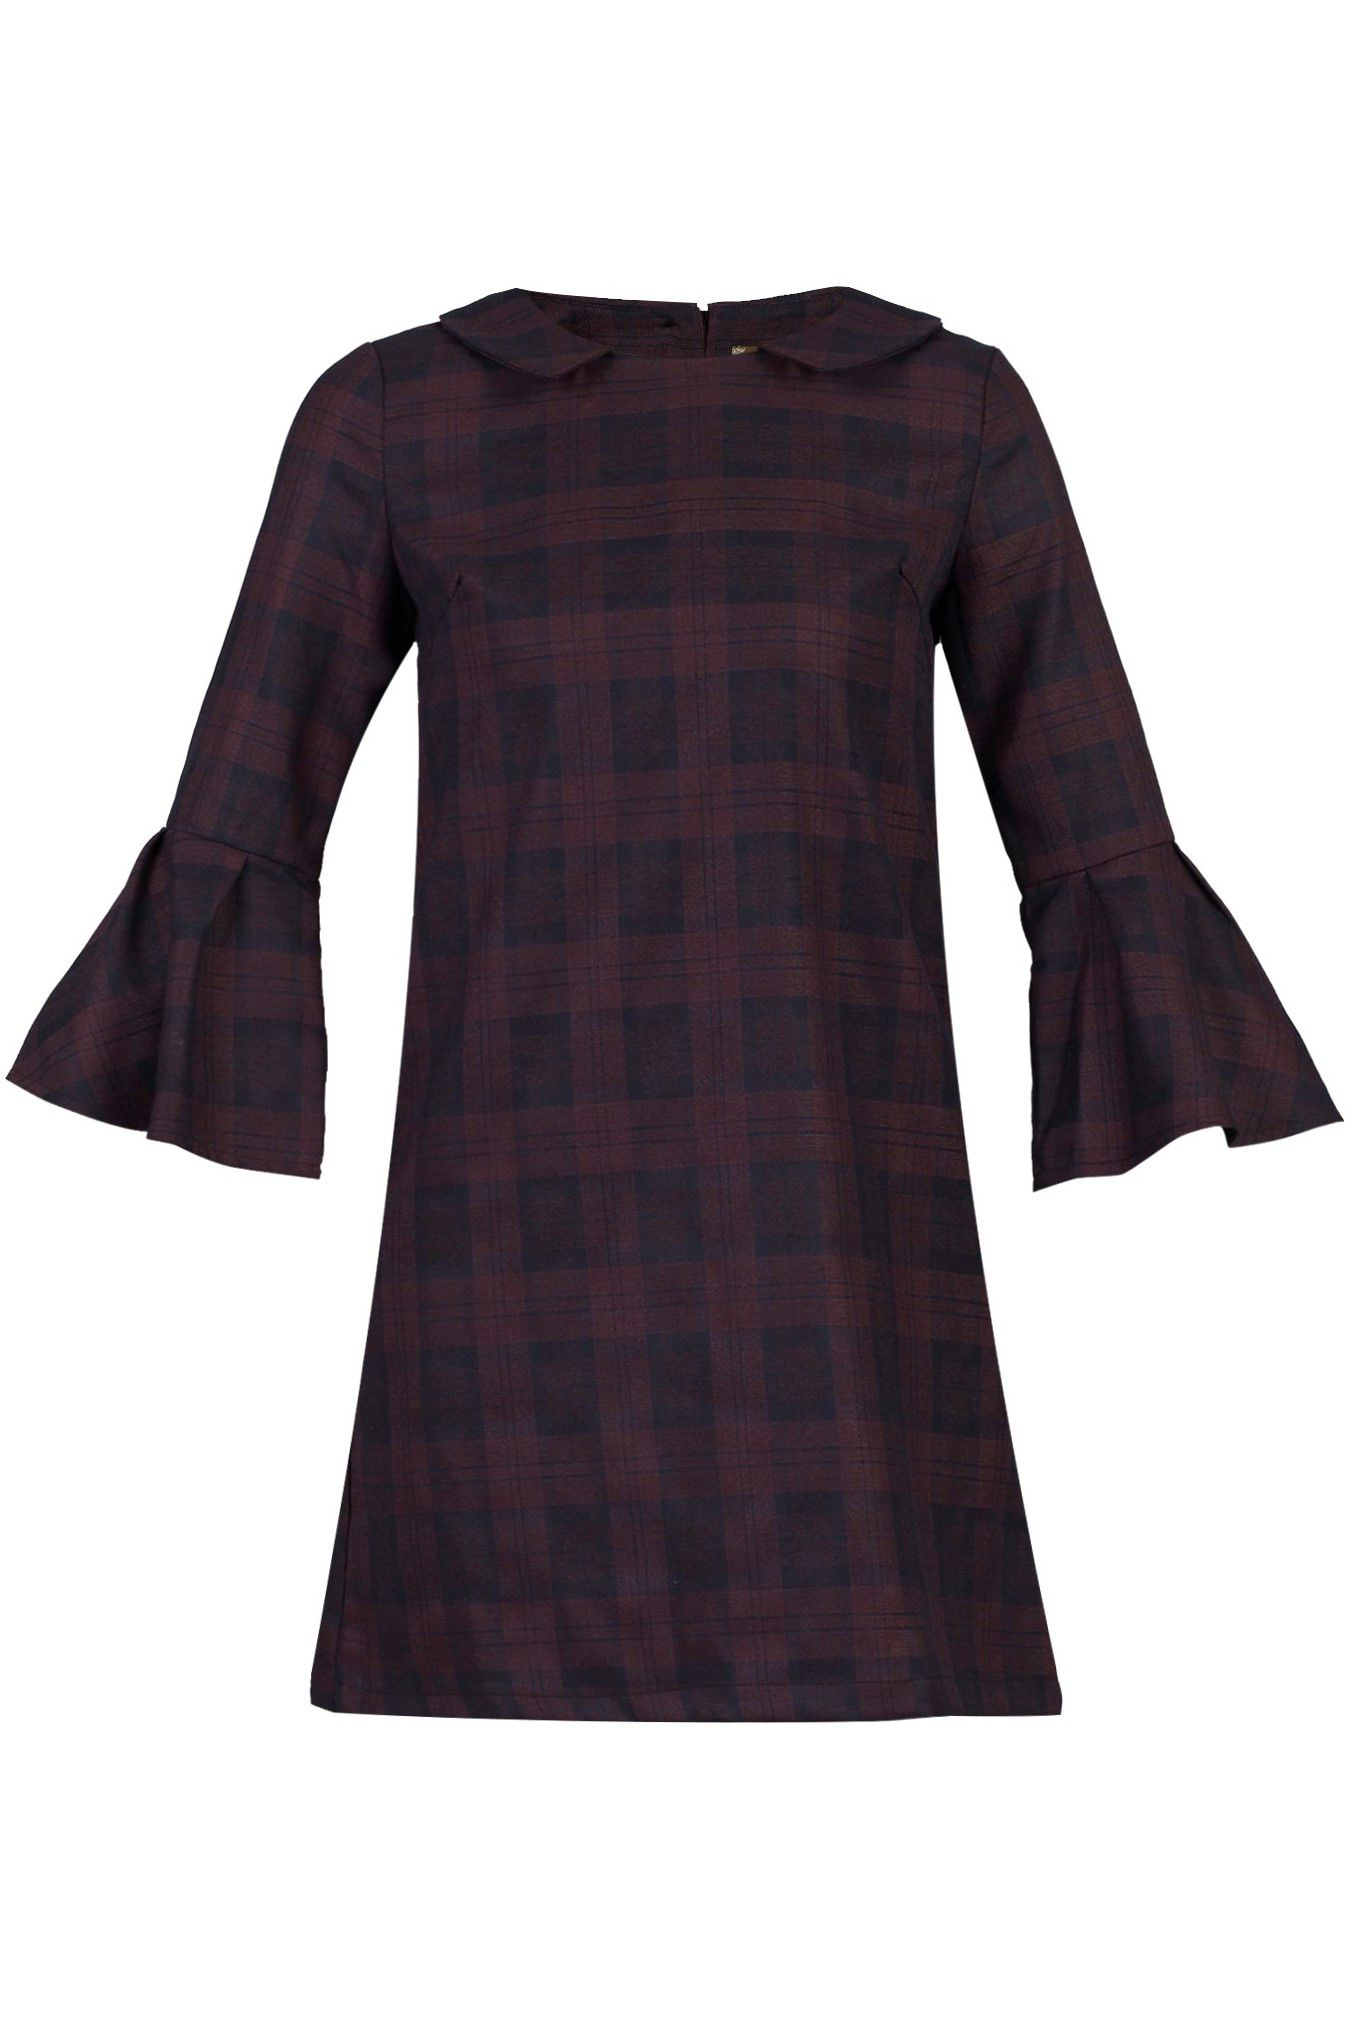 Jolie Moi Checked Fluted Sleeve Tunic, Black